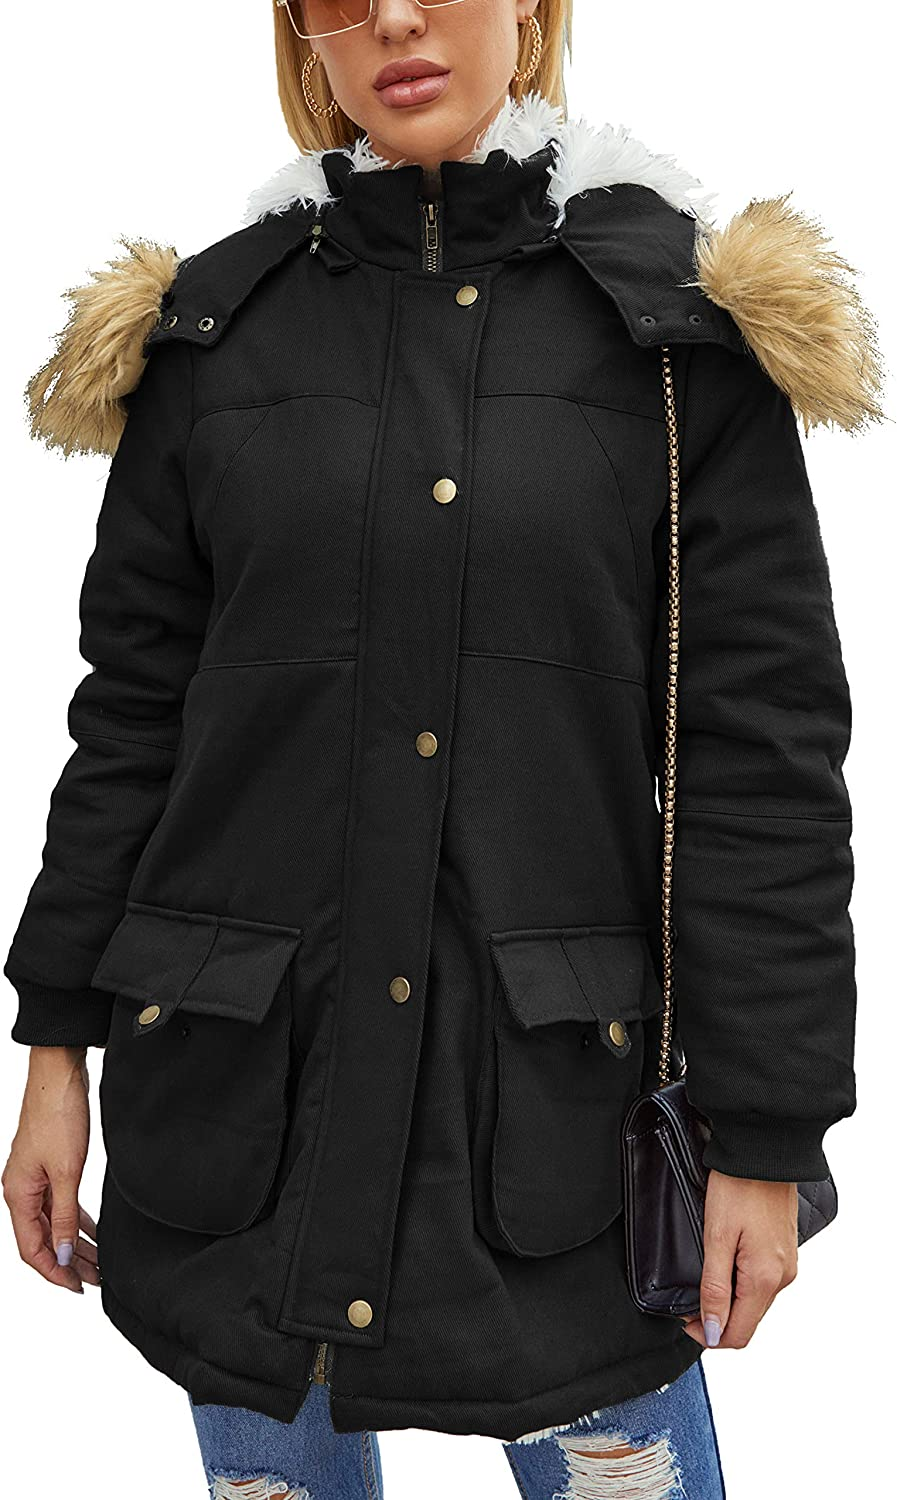 Women's Hooded Parka Coat Warm Winter 5 ☆ popular Faux Jacket Lined Manufacturer regenerated product with Fur